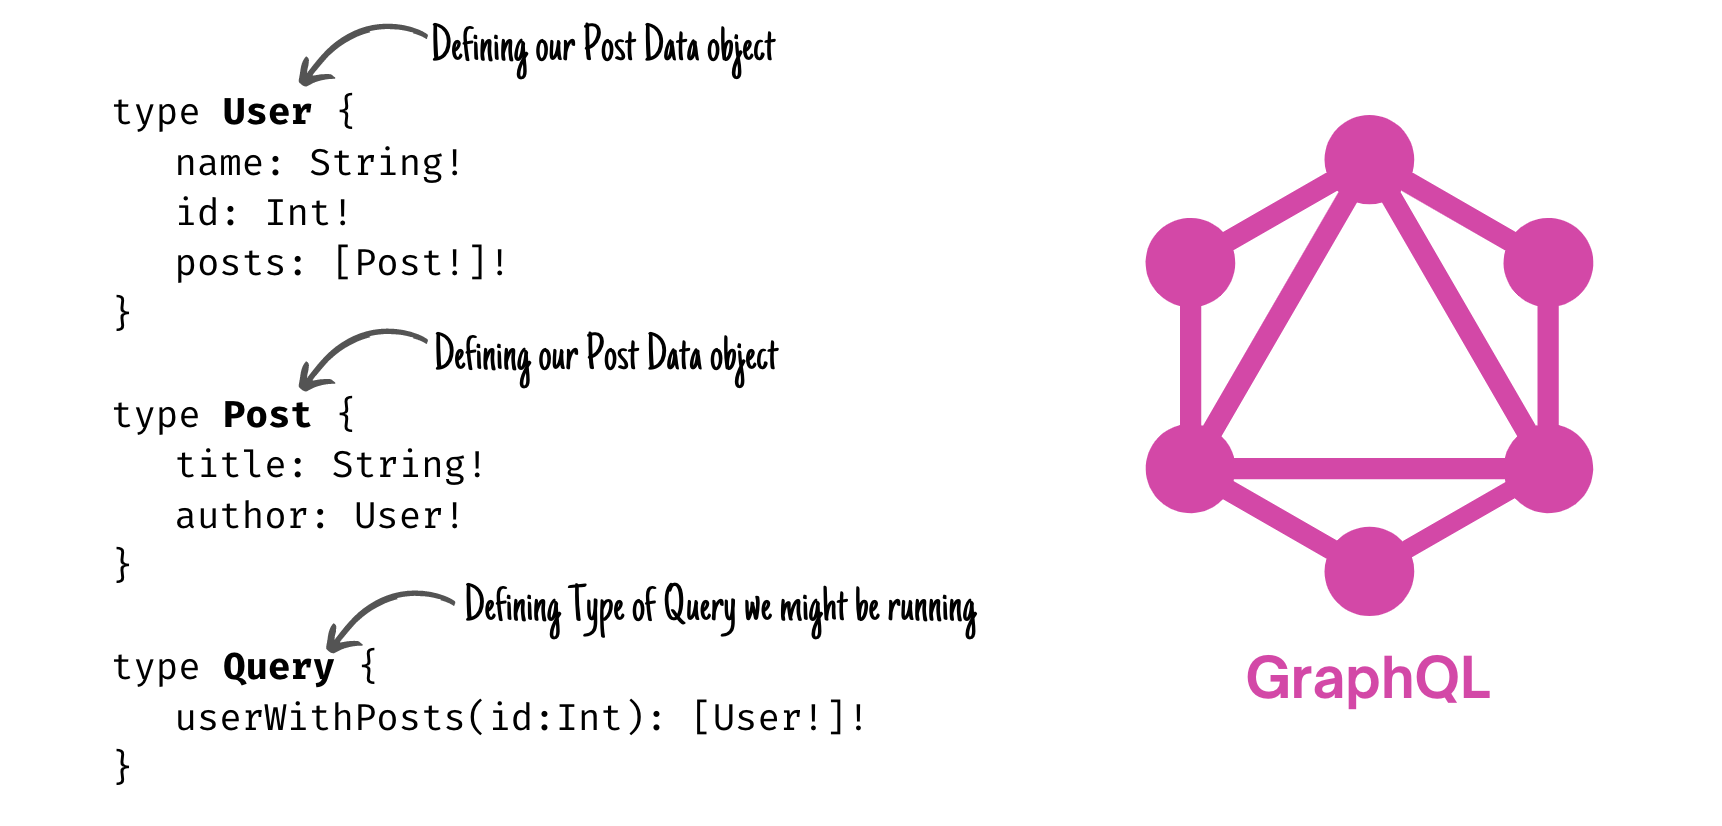 We'll define our rules using JSON for a User, Post, and Query.